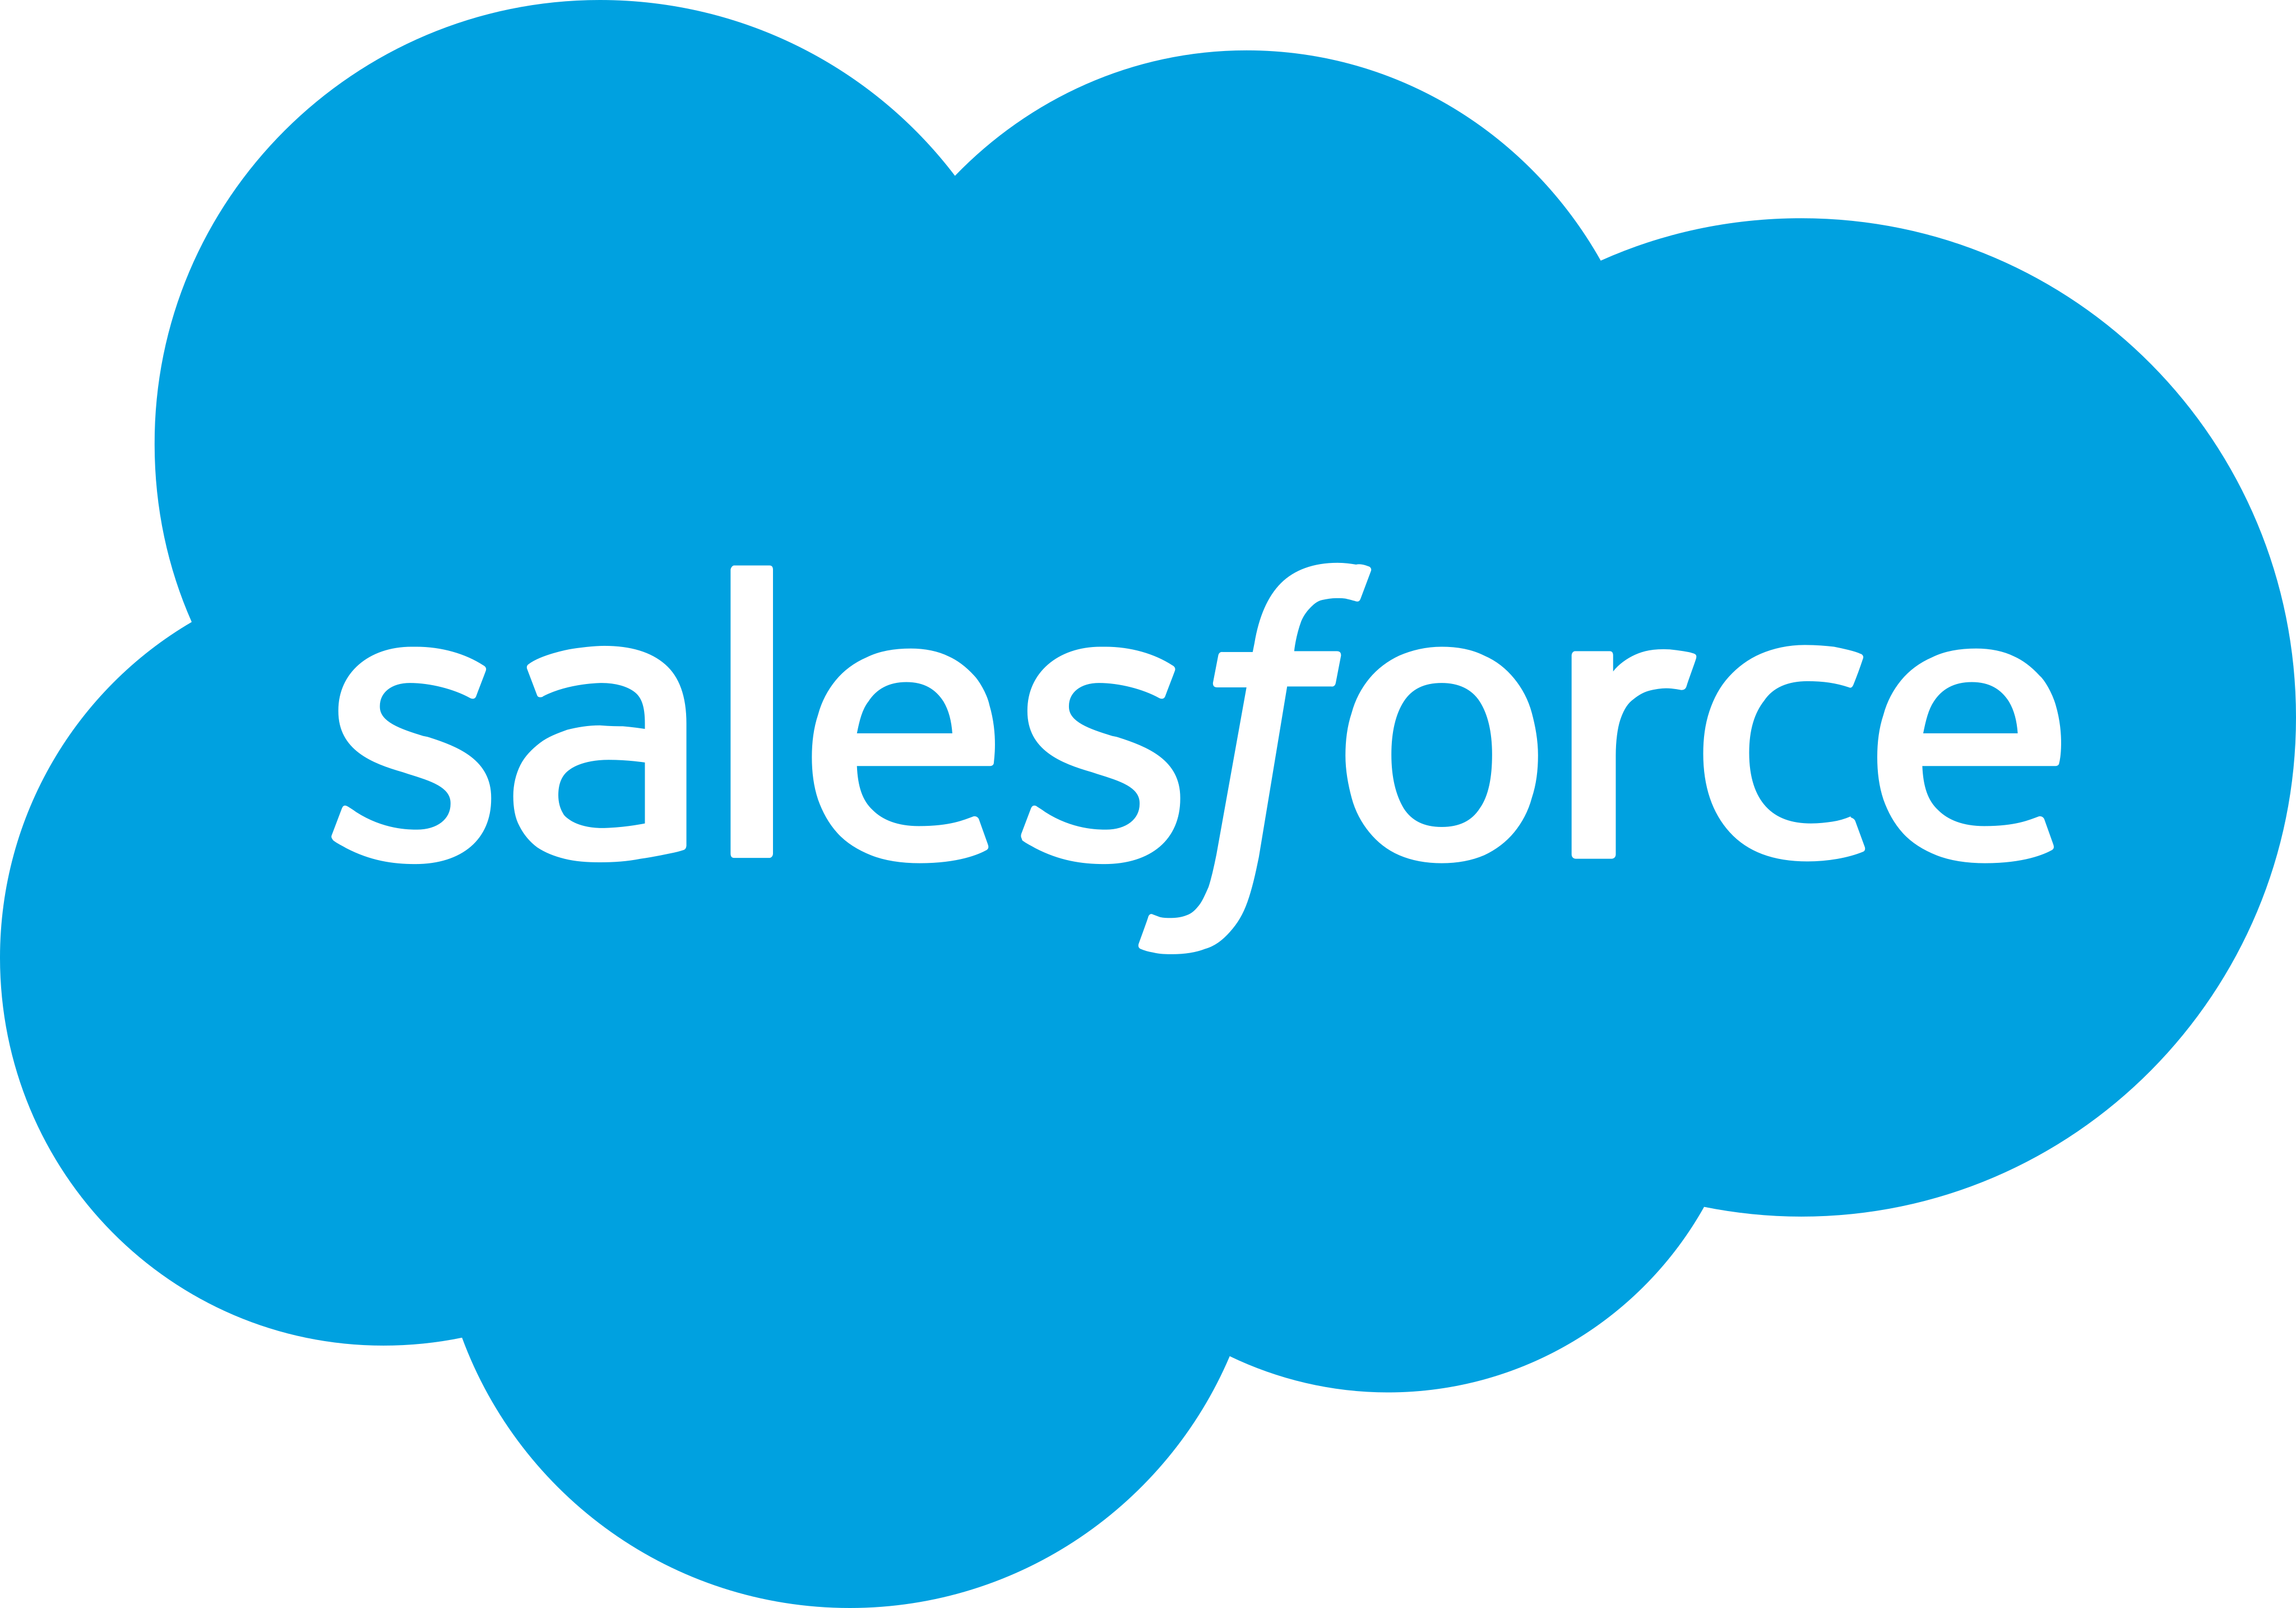 Salesforce Logo.